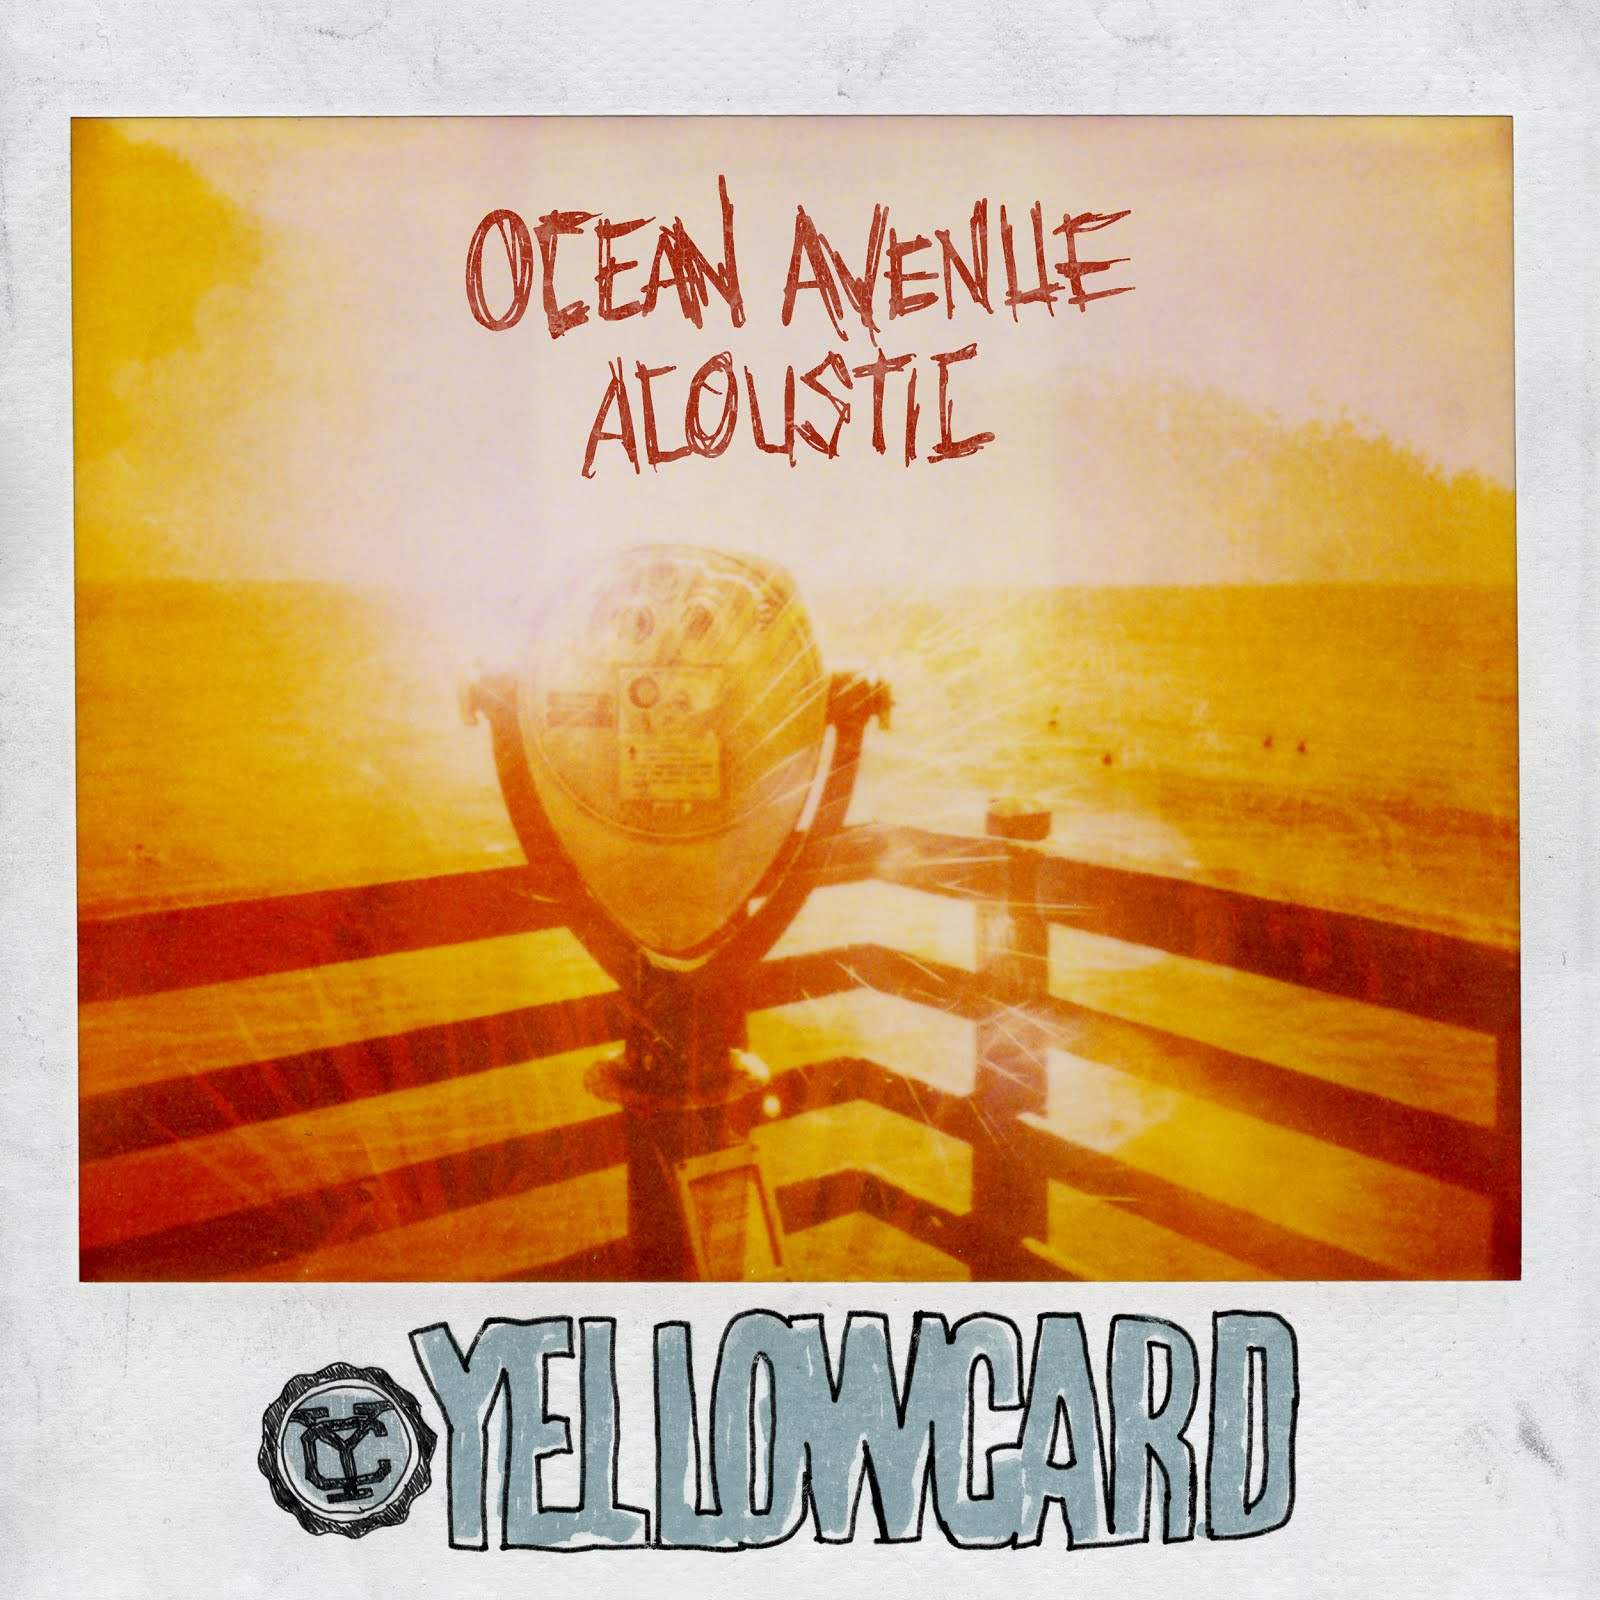 Yellowcard – Ocean Avenue Acoustic